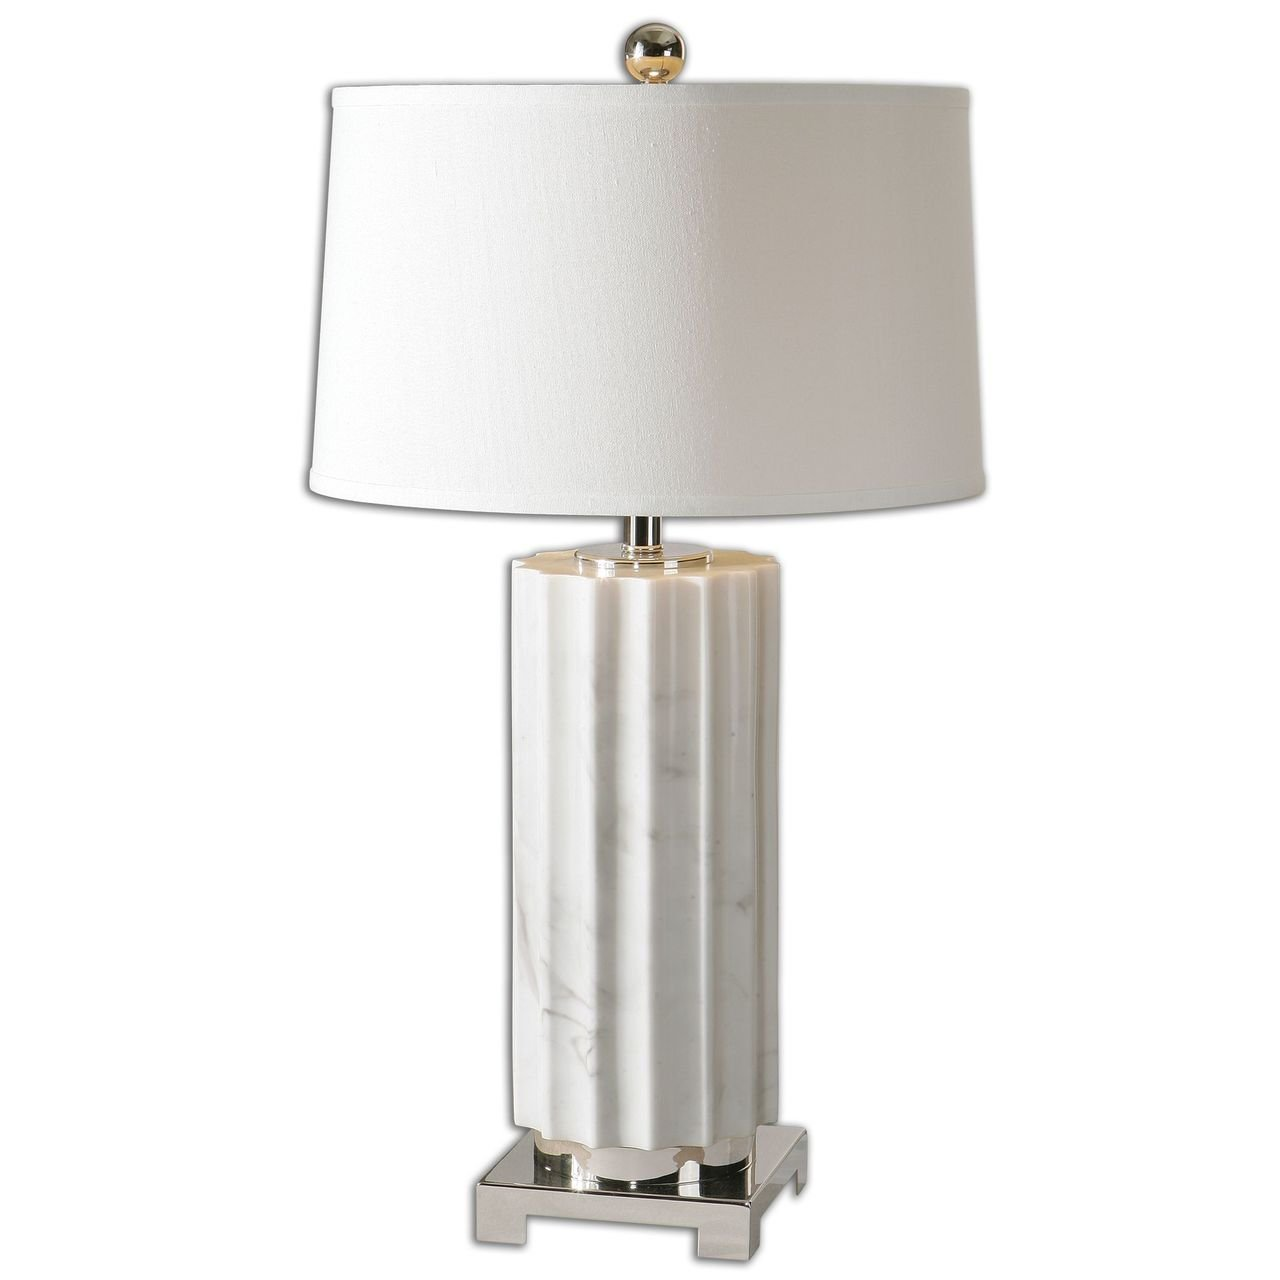 Scalloped White Marble Column Ceramic Table Lamp Modern Roman